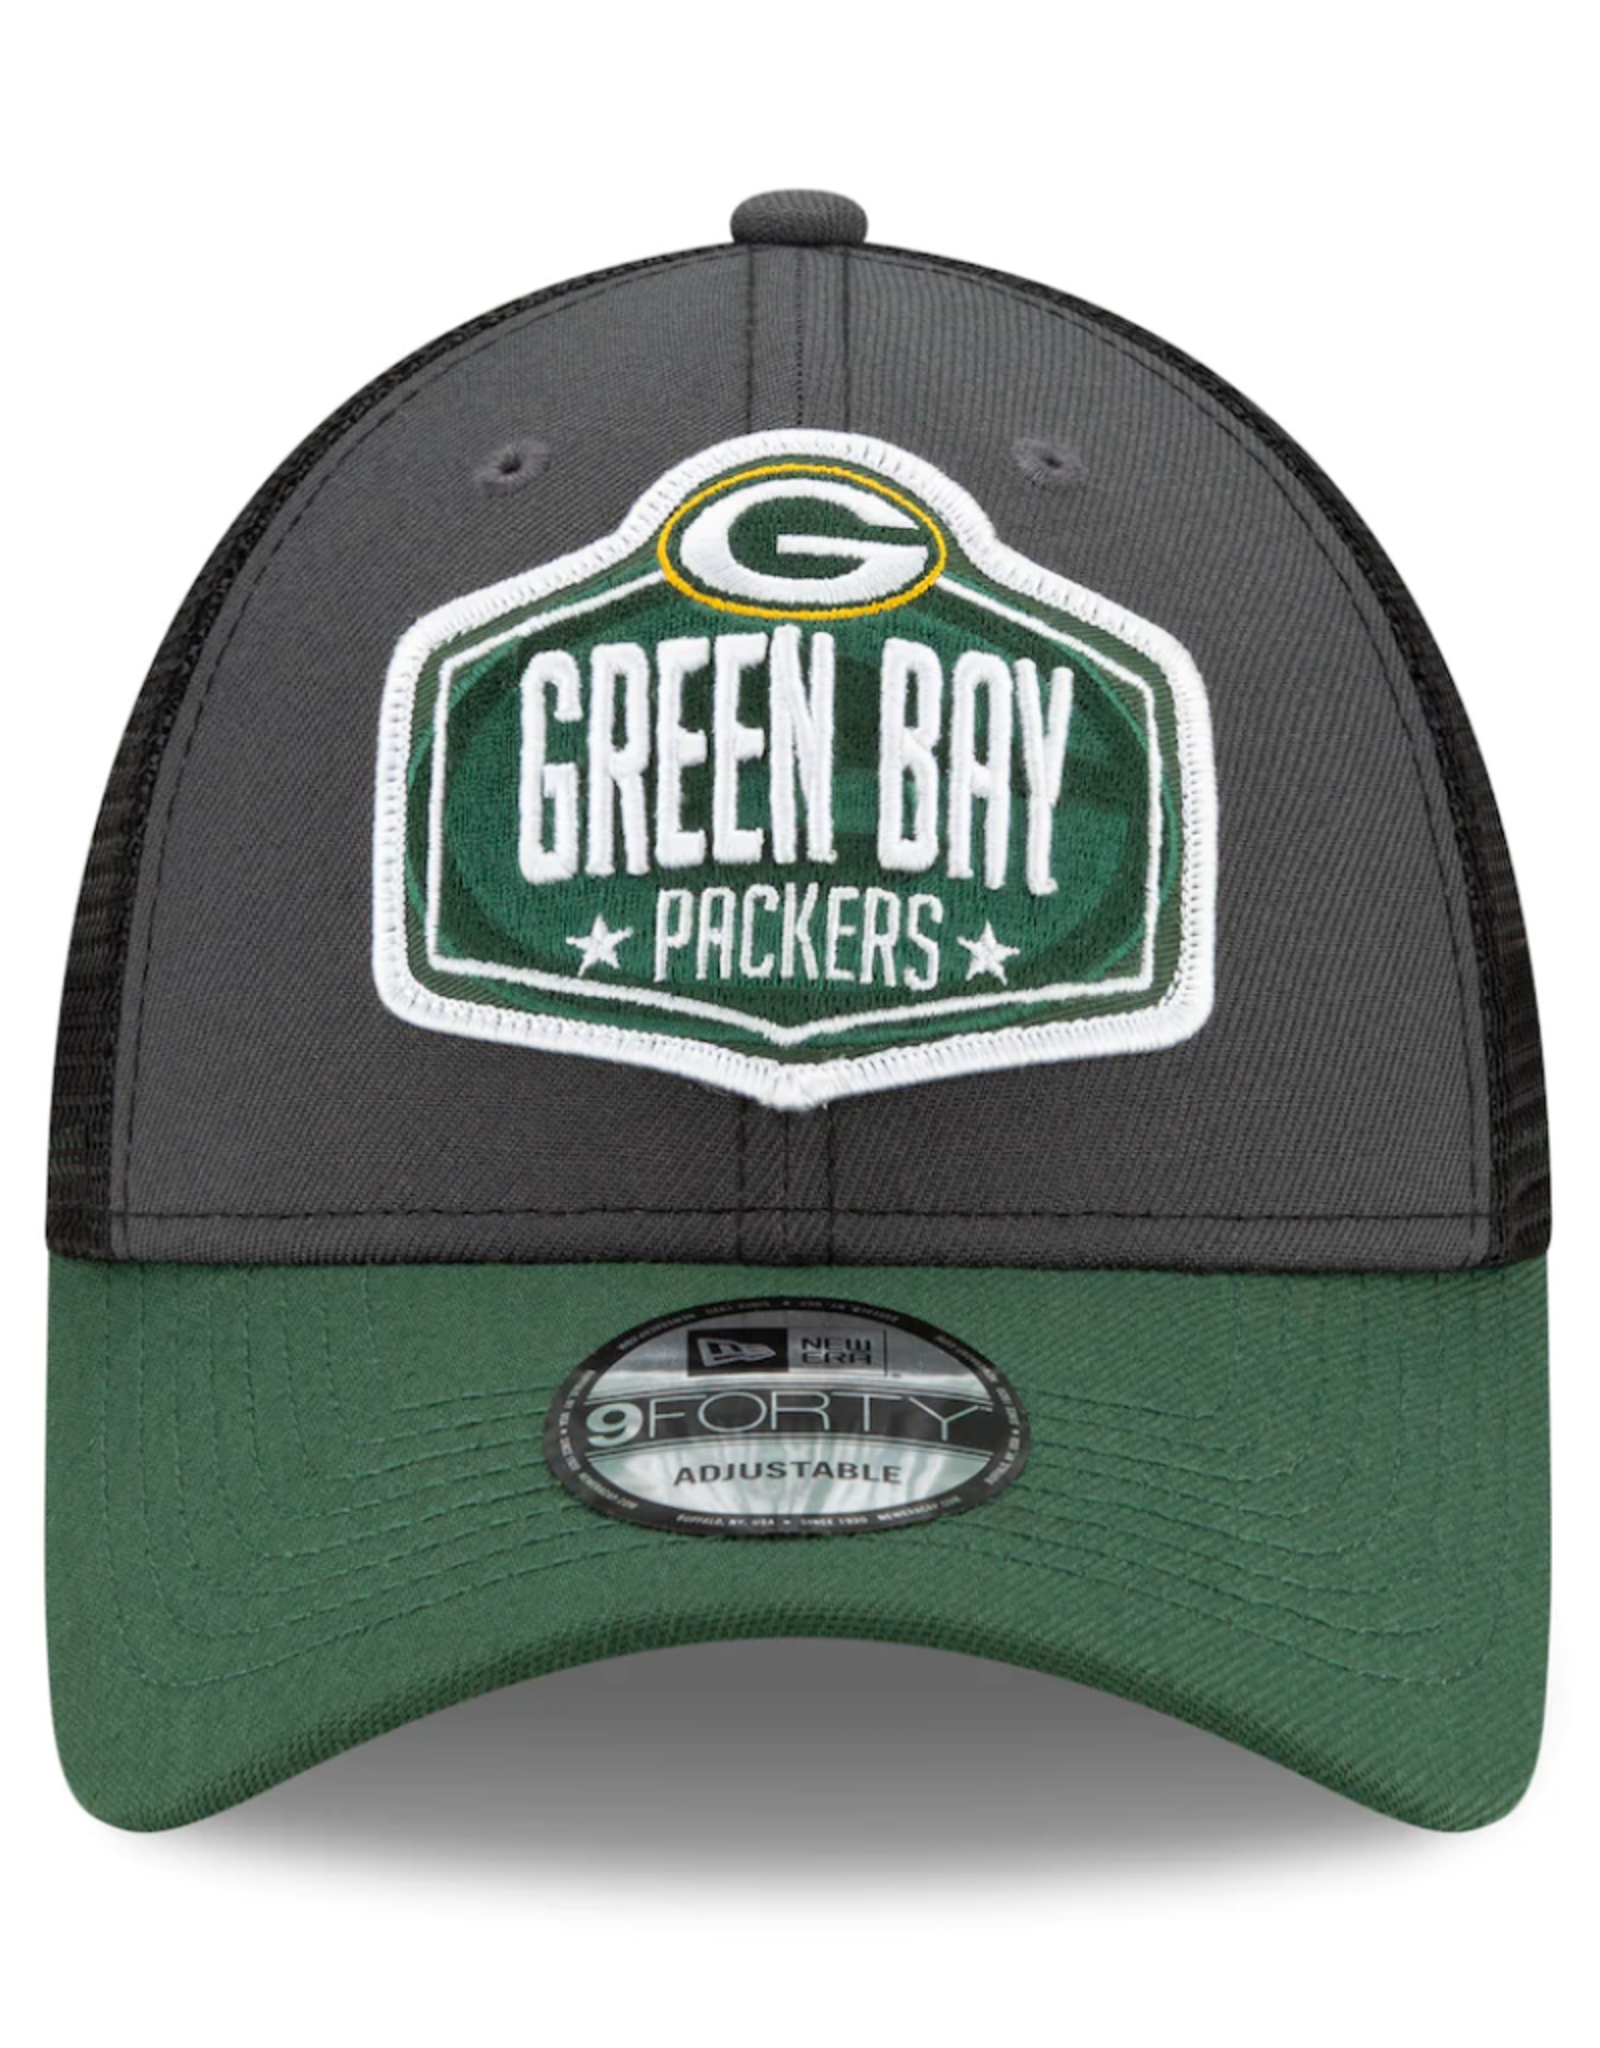 New Era Men's '21 9FORTY Adjustable NFL Draft Hat Green Bay Packers